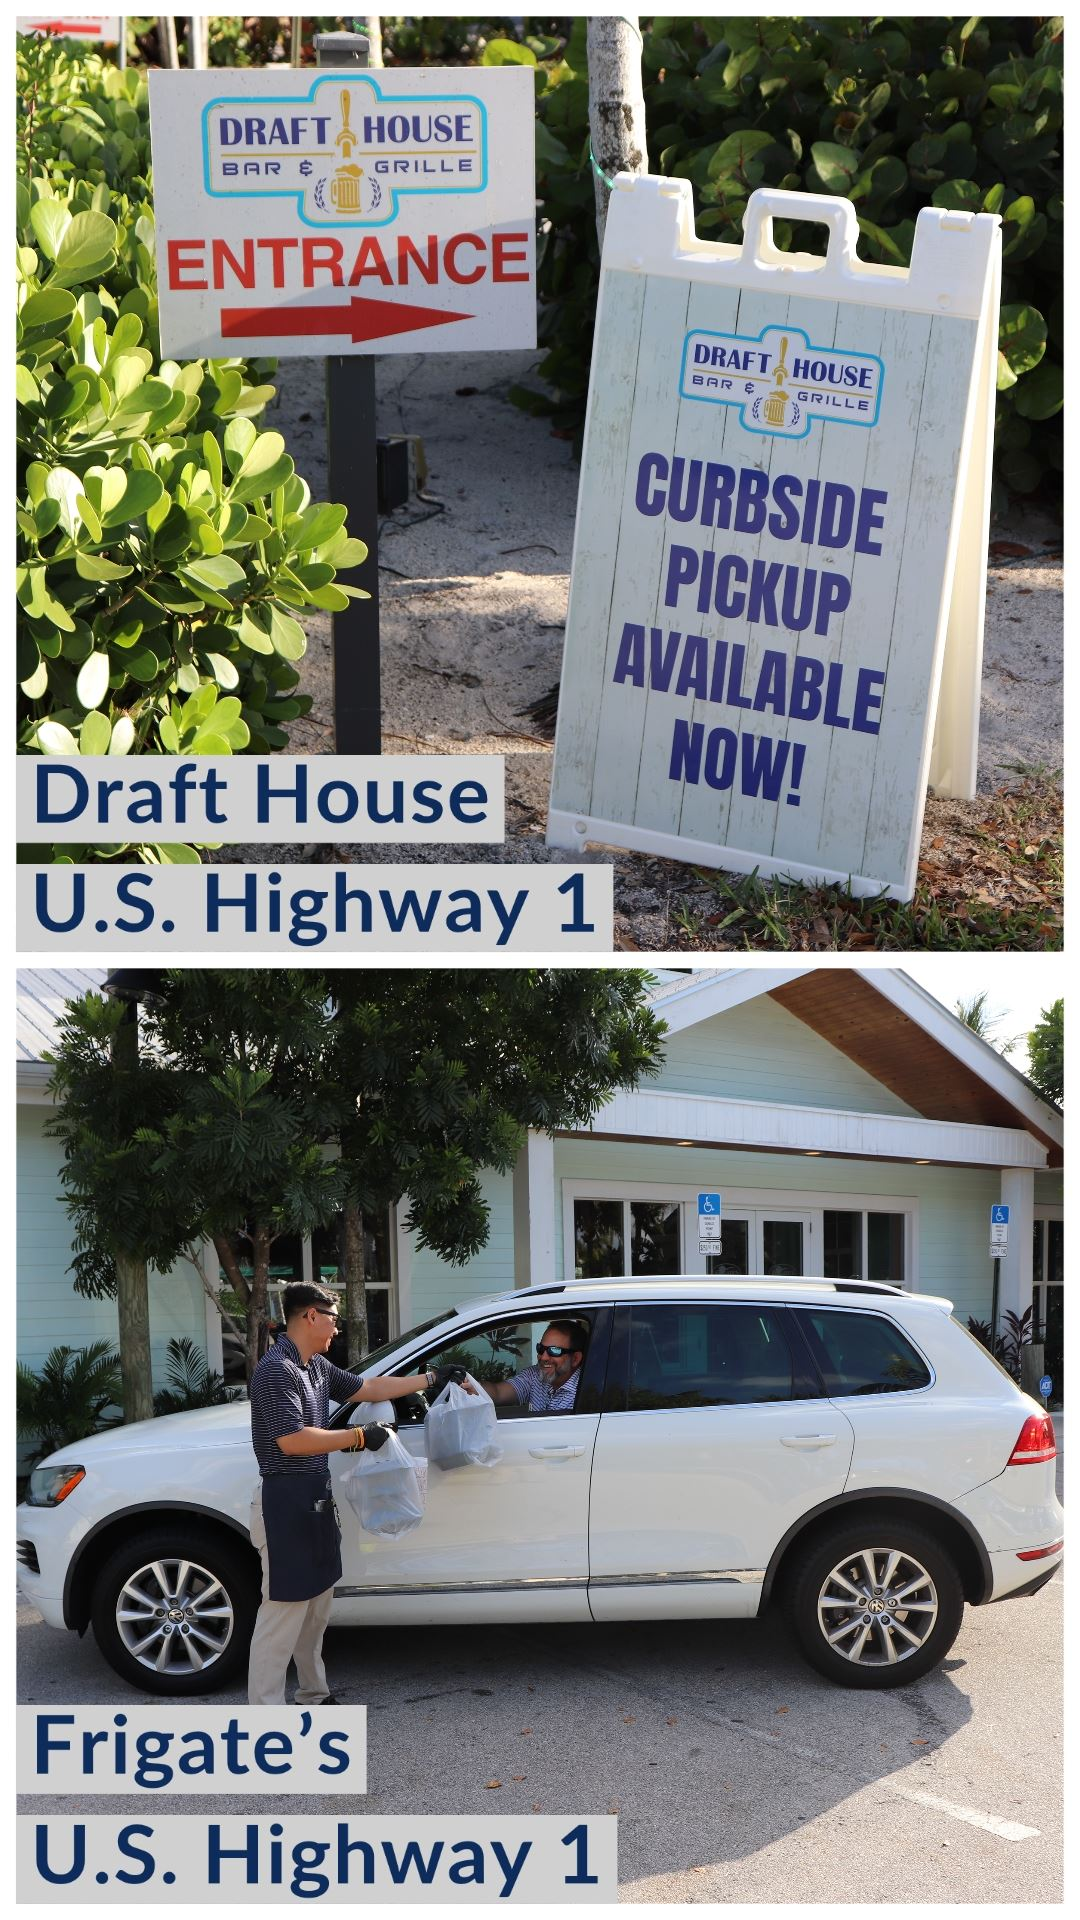 Draft House curbside service road sign